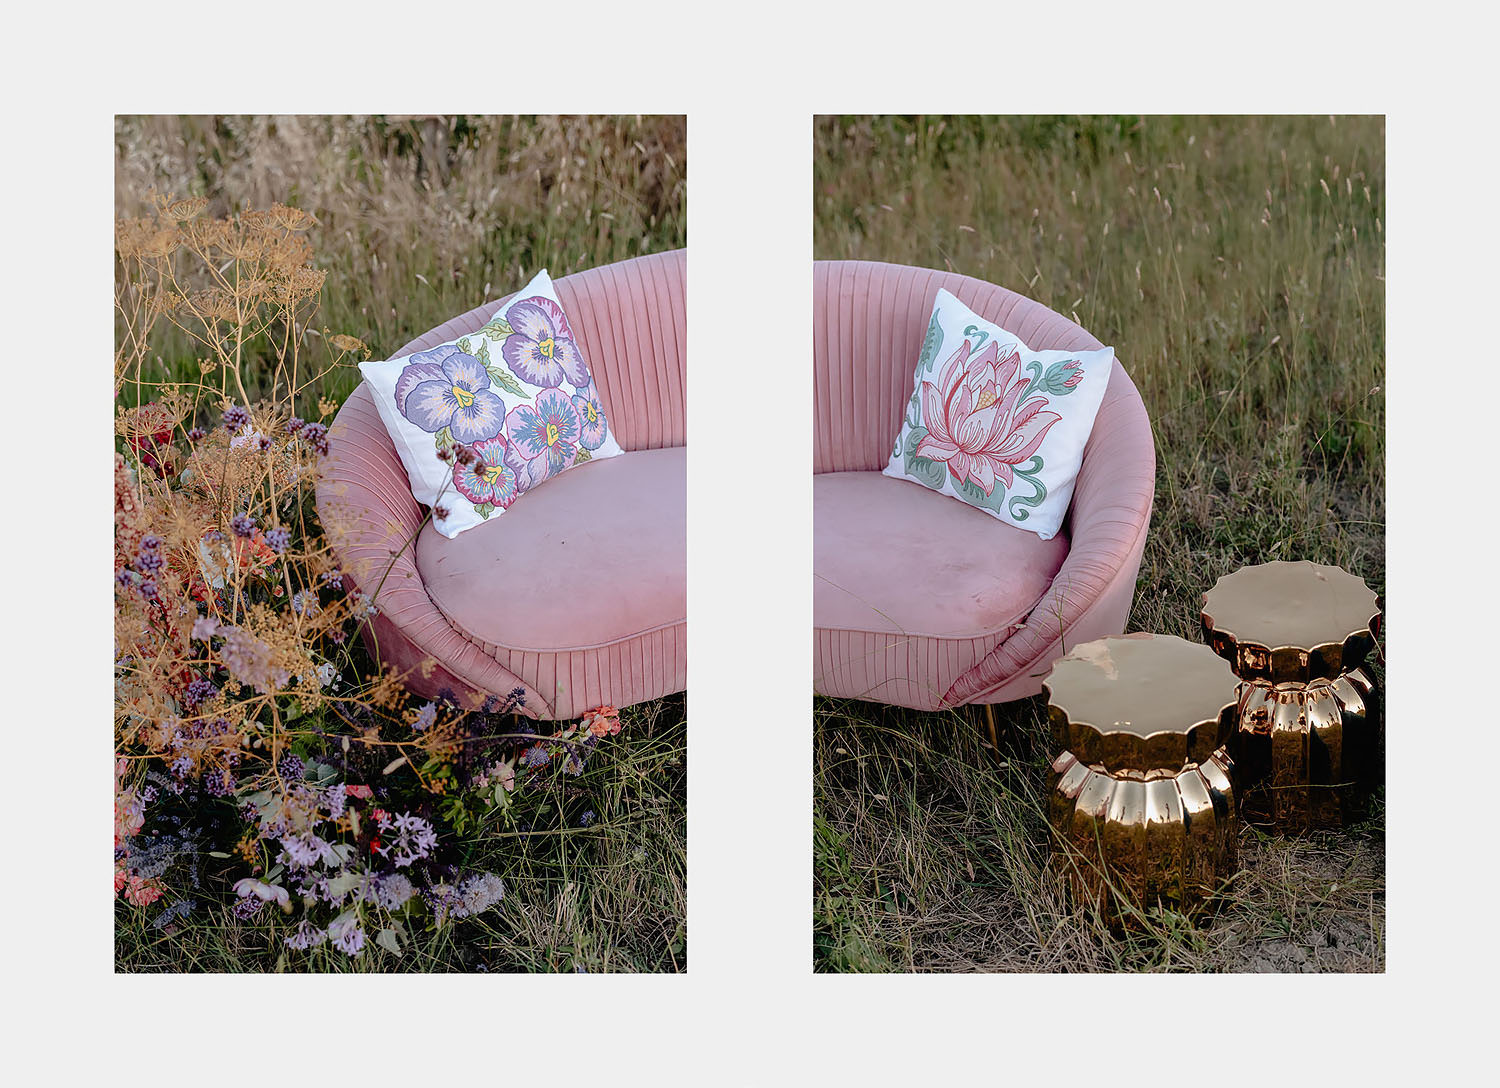 intimate Wedding Inspiration Tuscan Rolling Hills sofa intimate spot in coutriside event set